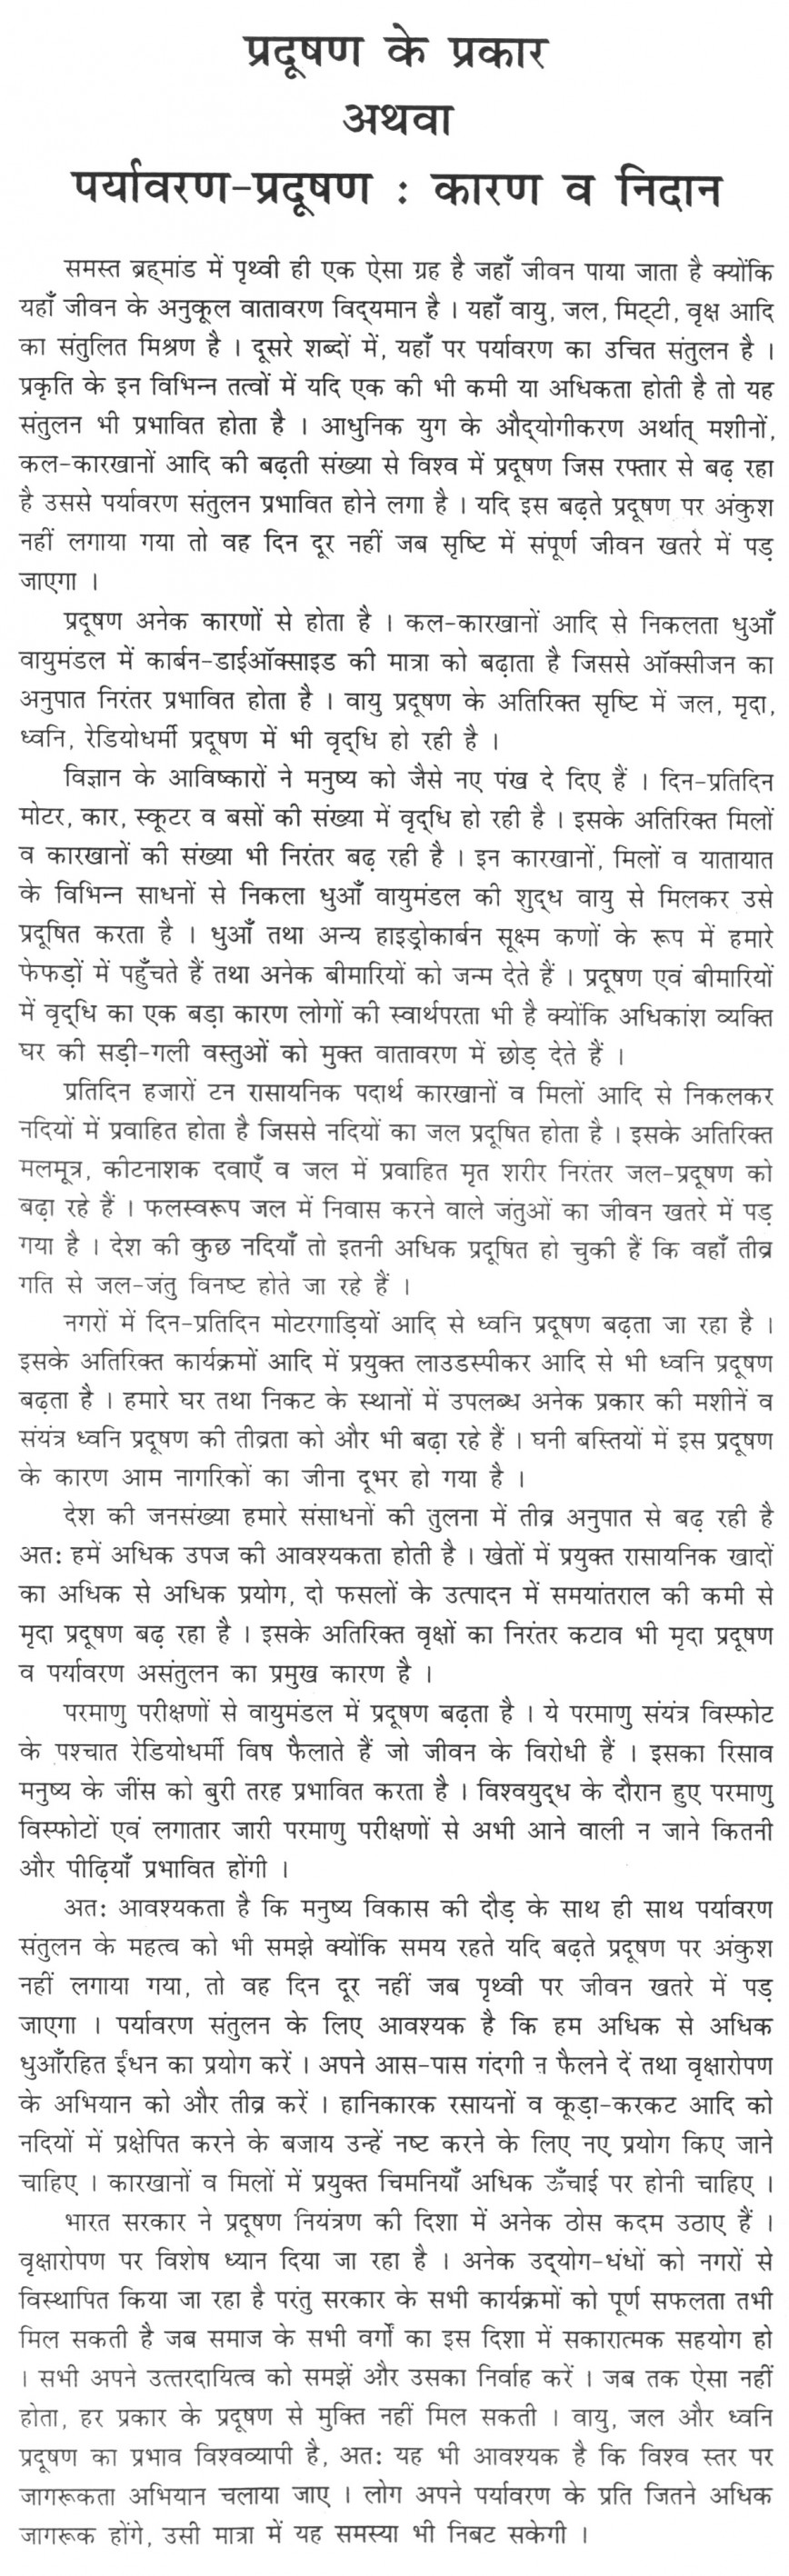 014 Good Habits Essay In Hindi Exceptional Habit Eating And Bad 868